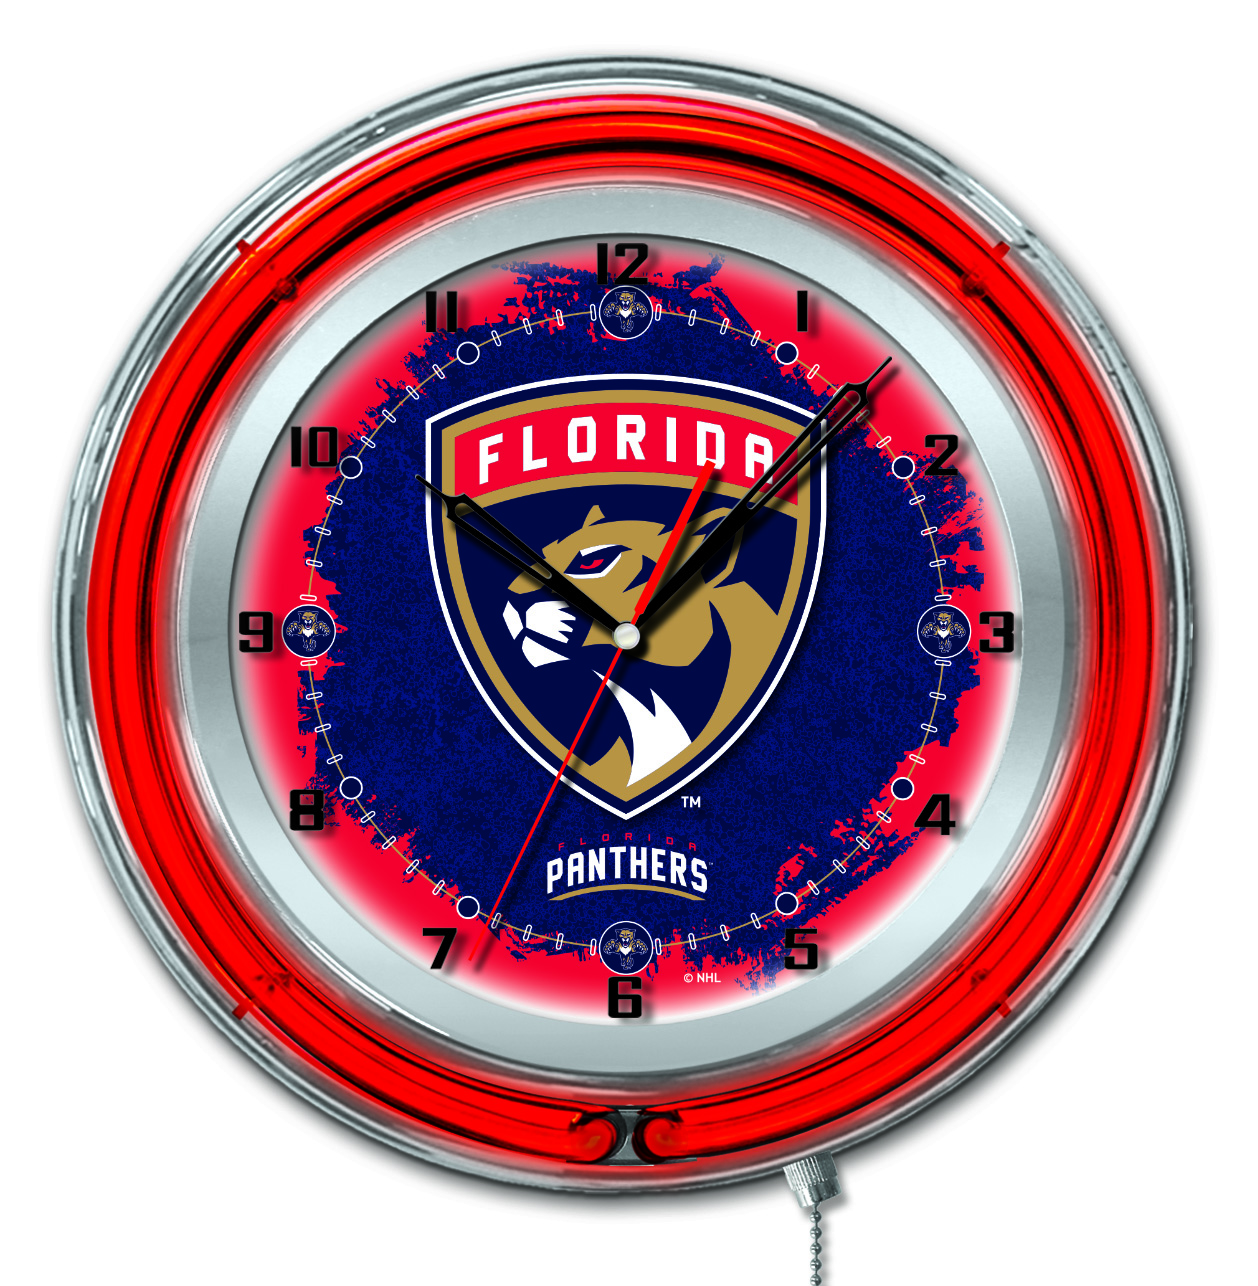 Florida Panthers Double Neon Ring 19quot dia Logo Clock  : Clk19FlaPan from zerbee.com size 1174 x 1200 jpeg 172kB